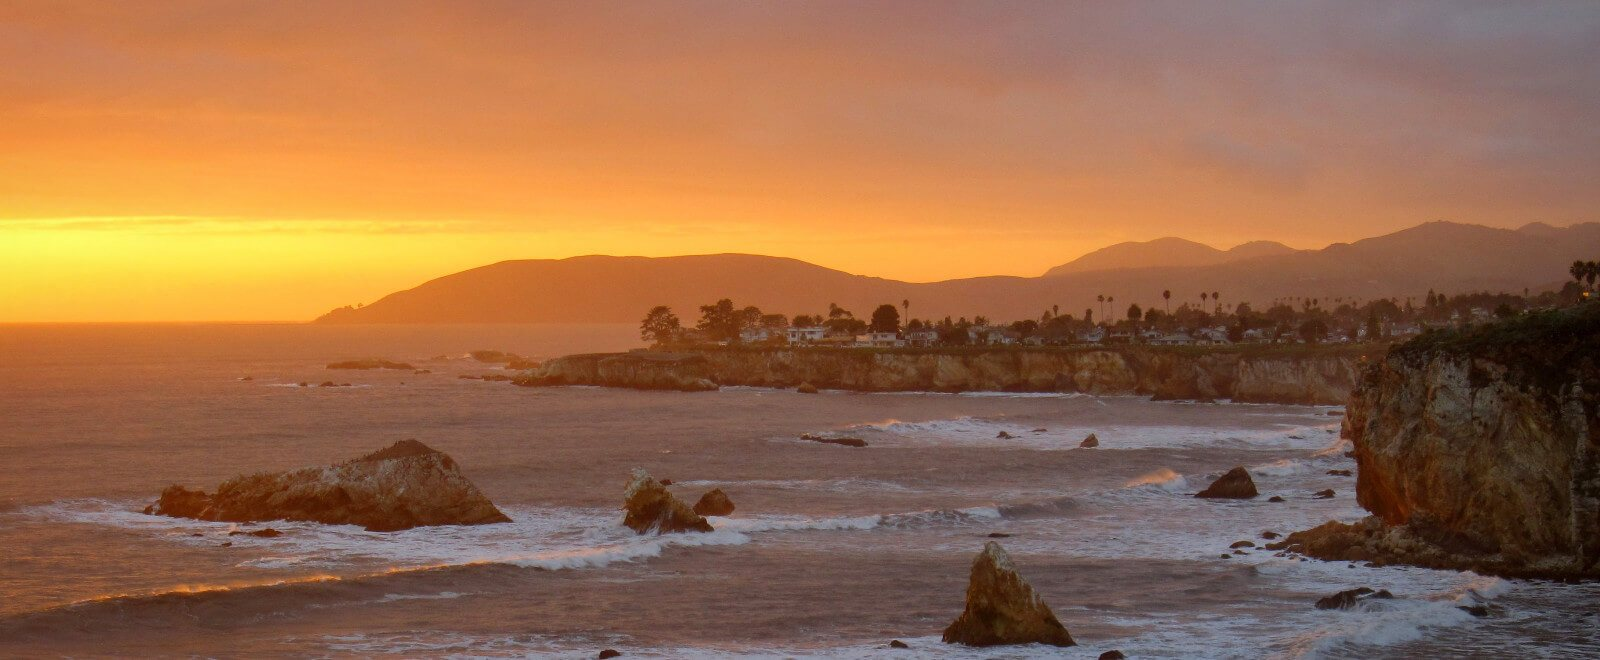 Sunset at Pismo Beach in California's Central Coast